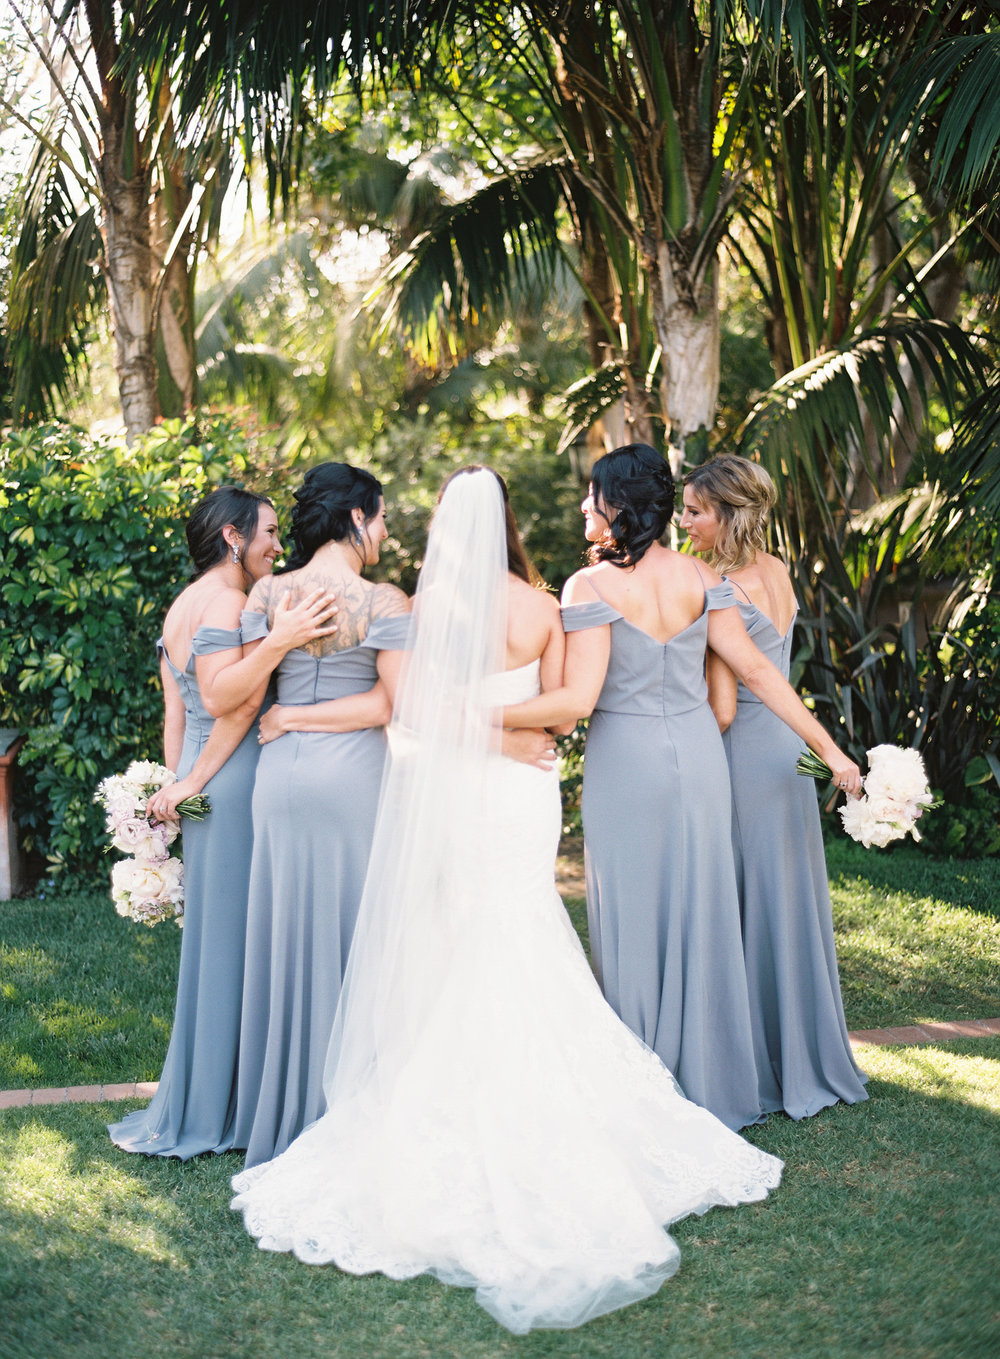 www.santabarbarawedding.com | Ashley Kelemen Photography | Four Seasons Santa Barbara | Bridesmaids